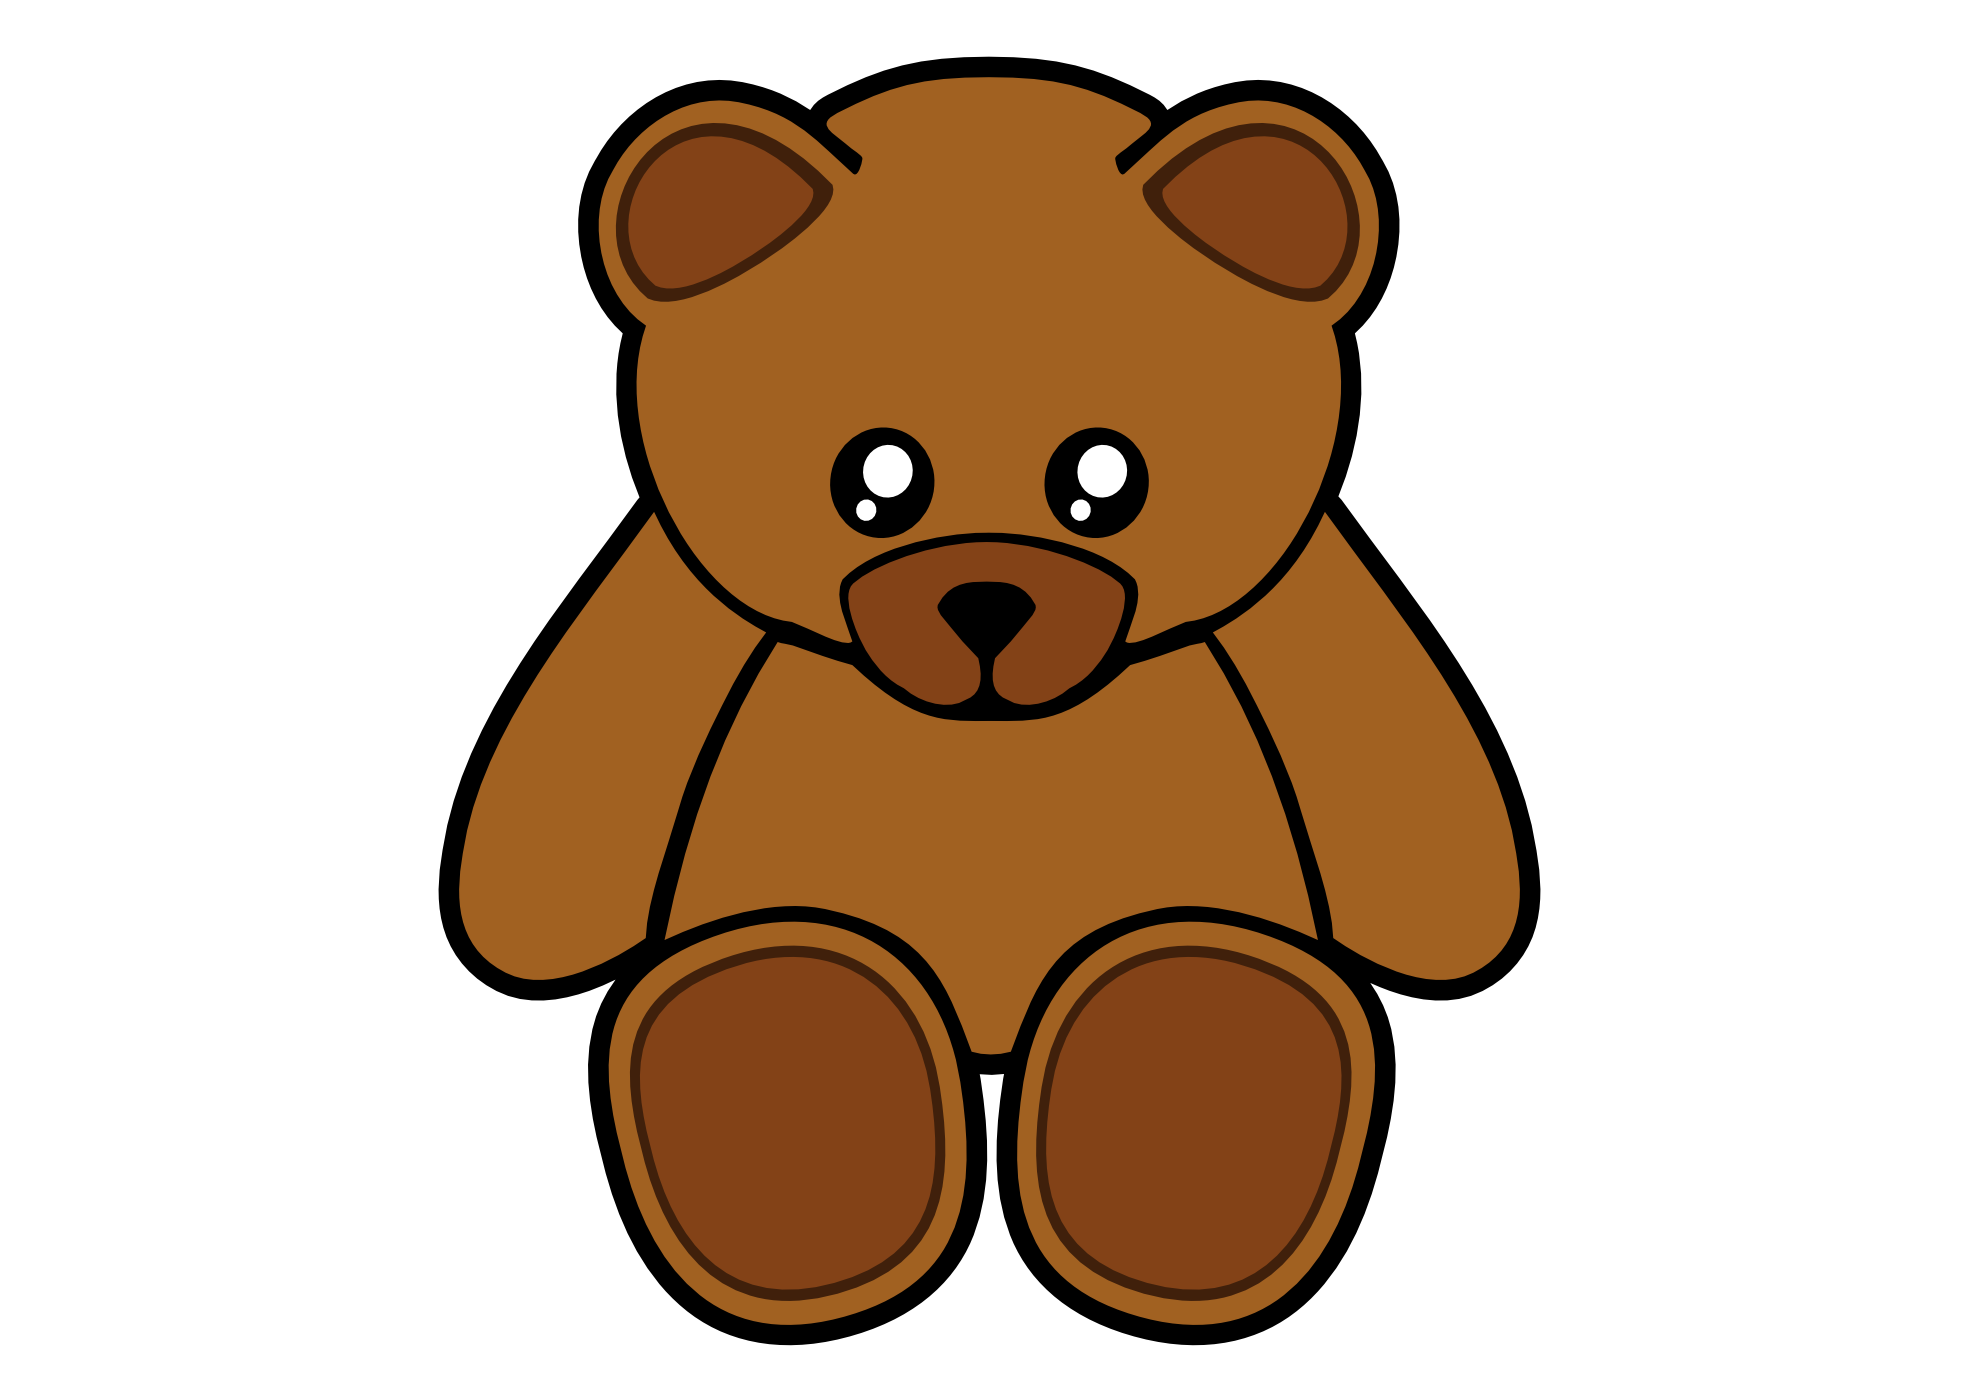 Teddy Bear Clipart - ClipArt Best